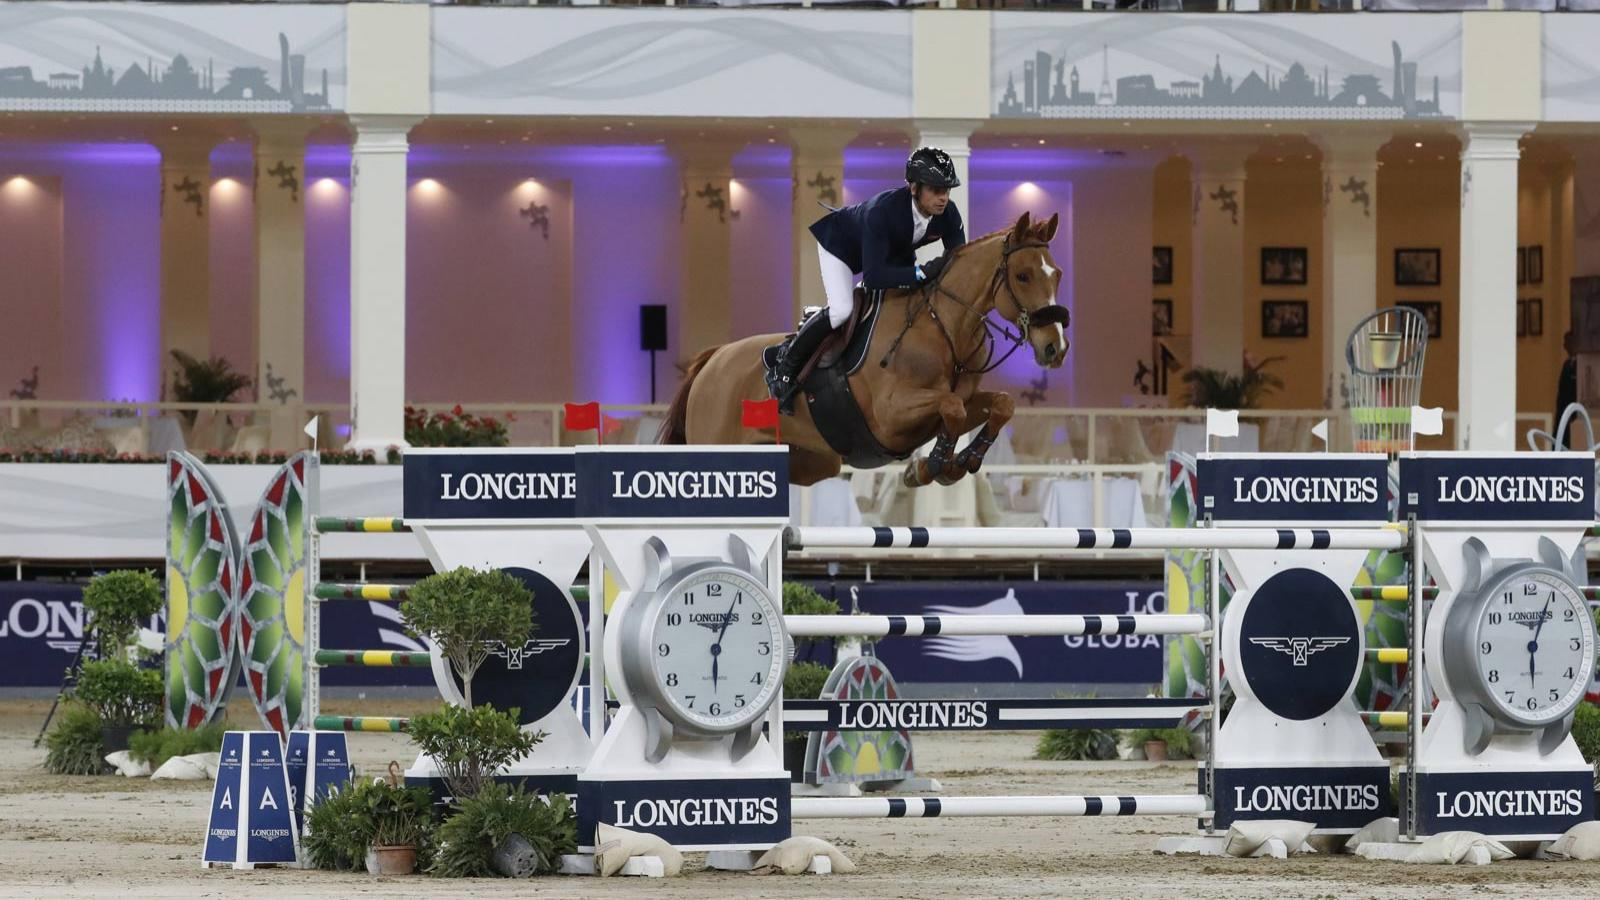 Longines Global Champions Tour of Doha; Jumping; 2019,pic4